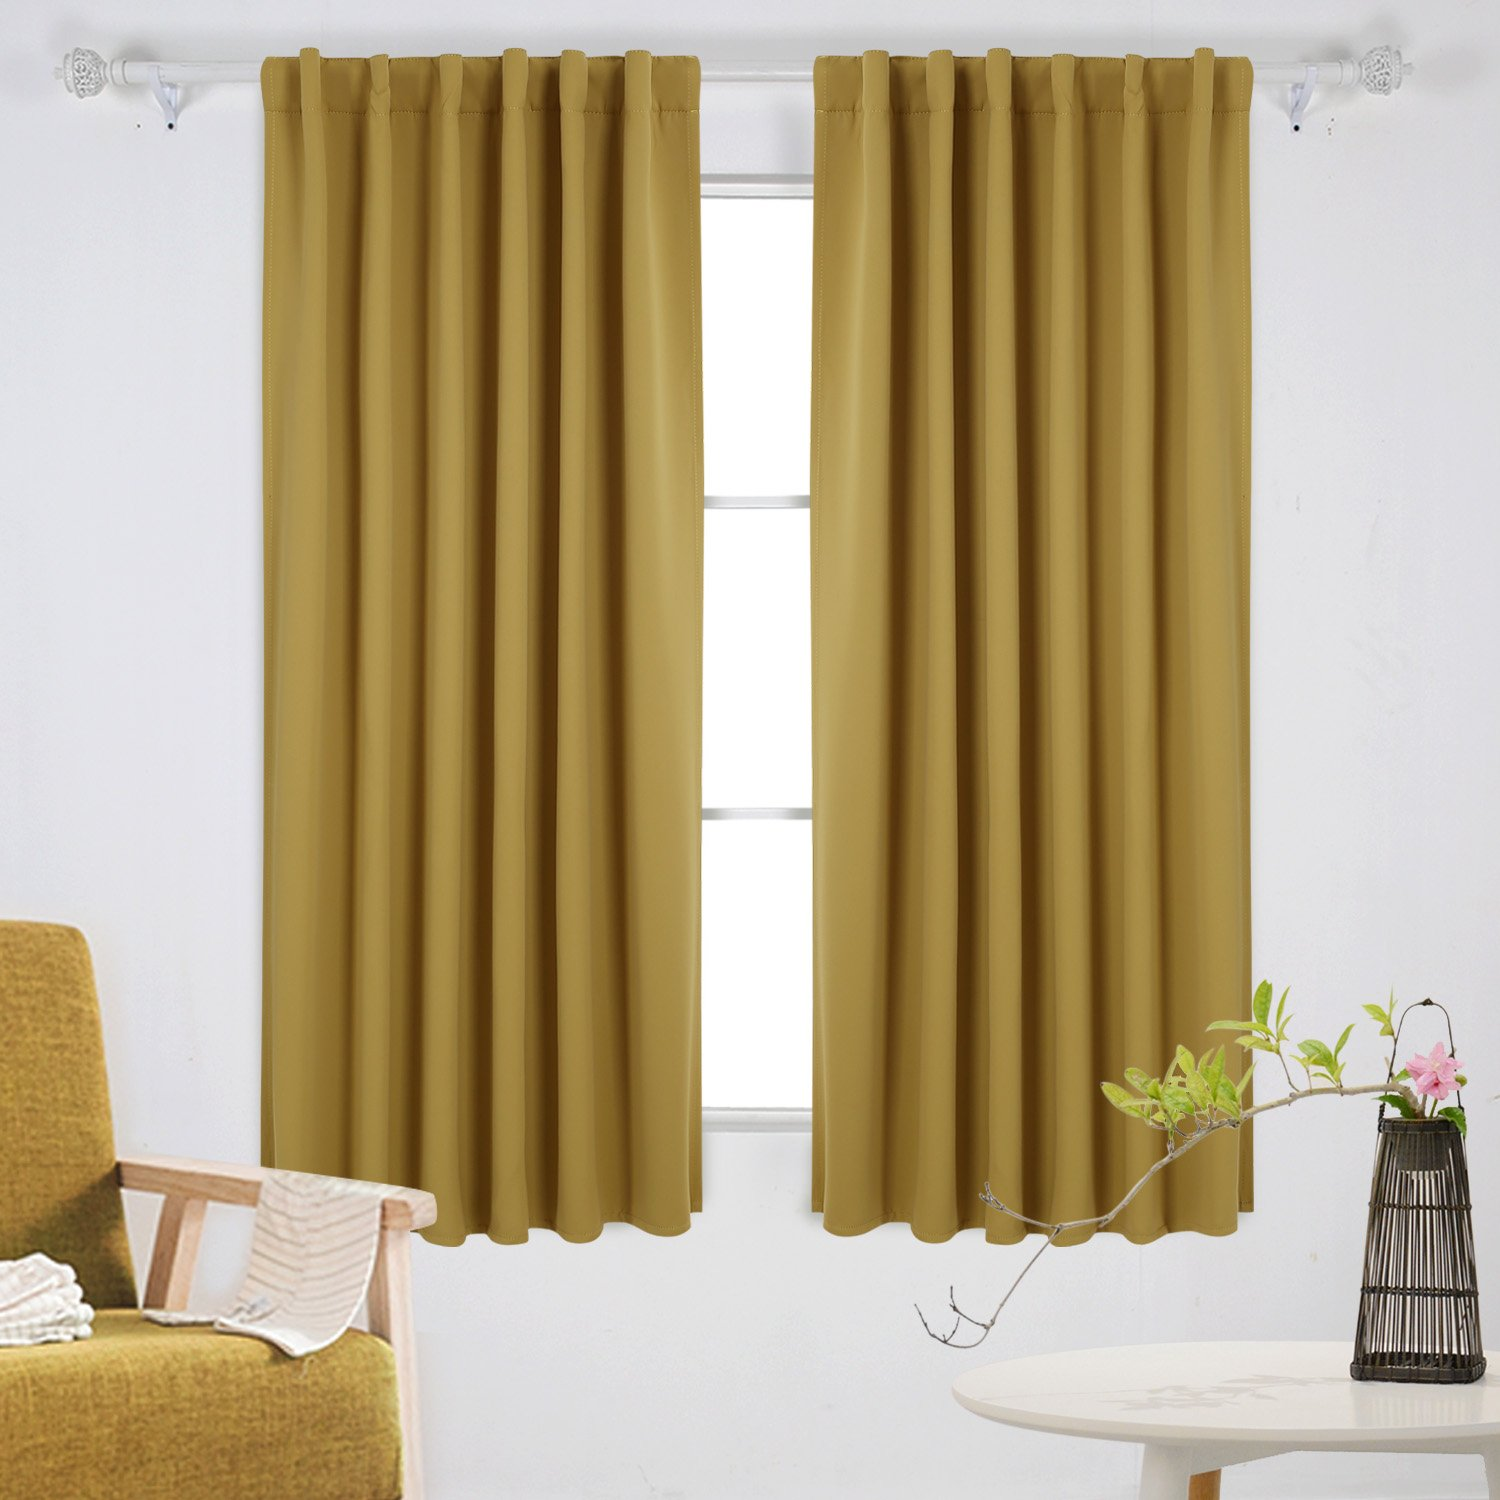 Deconovo Back Tab and Rod Pocket Curtains and Drapes Room Darkening Panels Insulated Thermal Blackout Curtains Misted Yellow